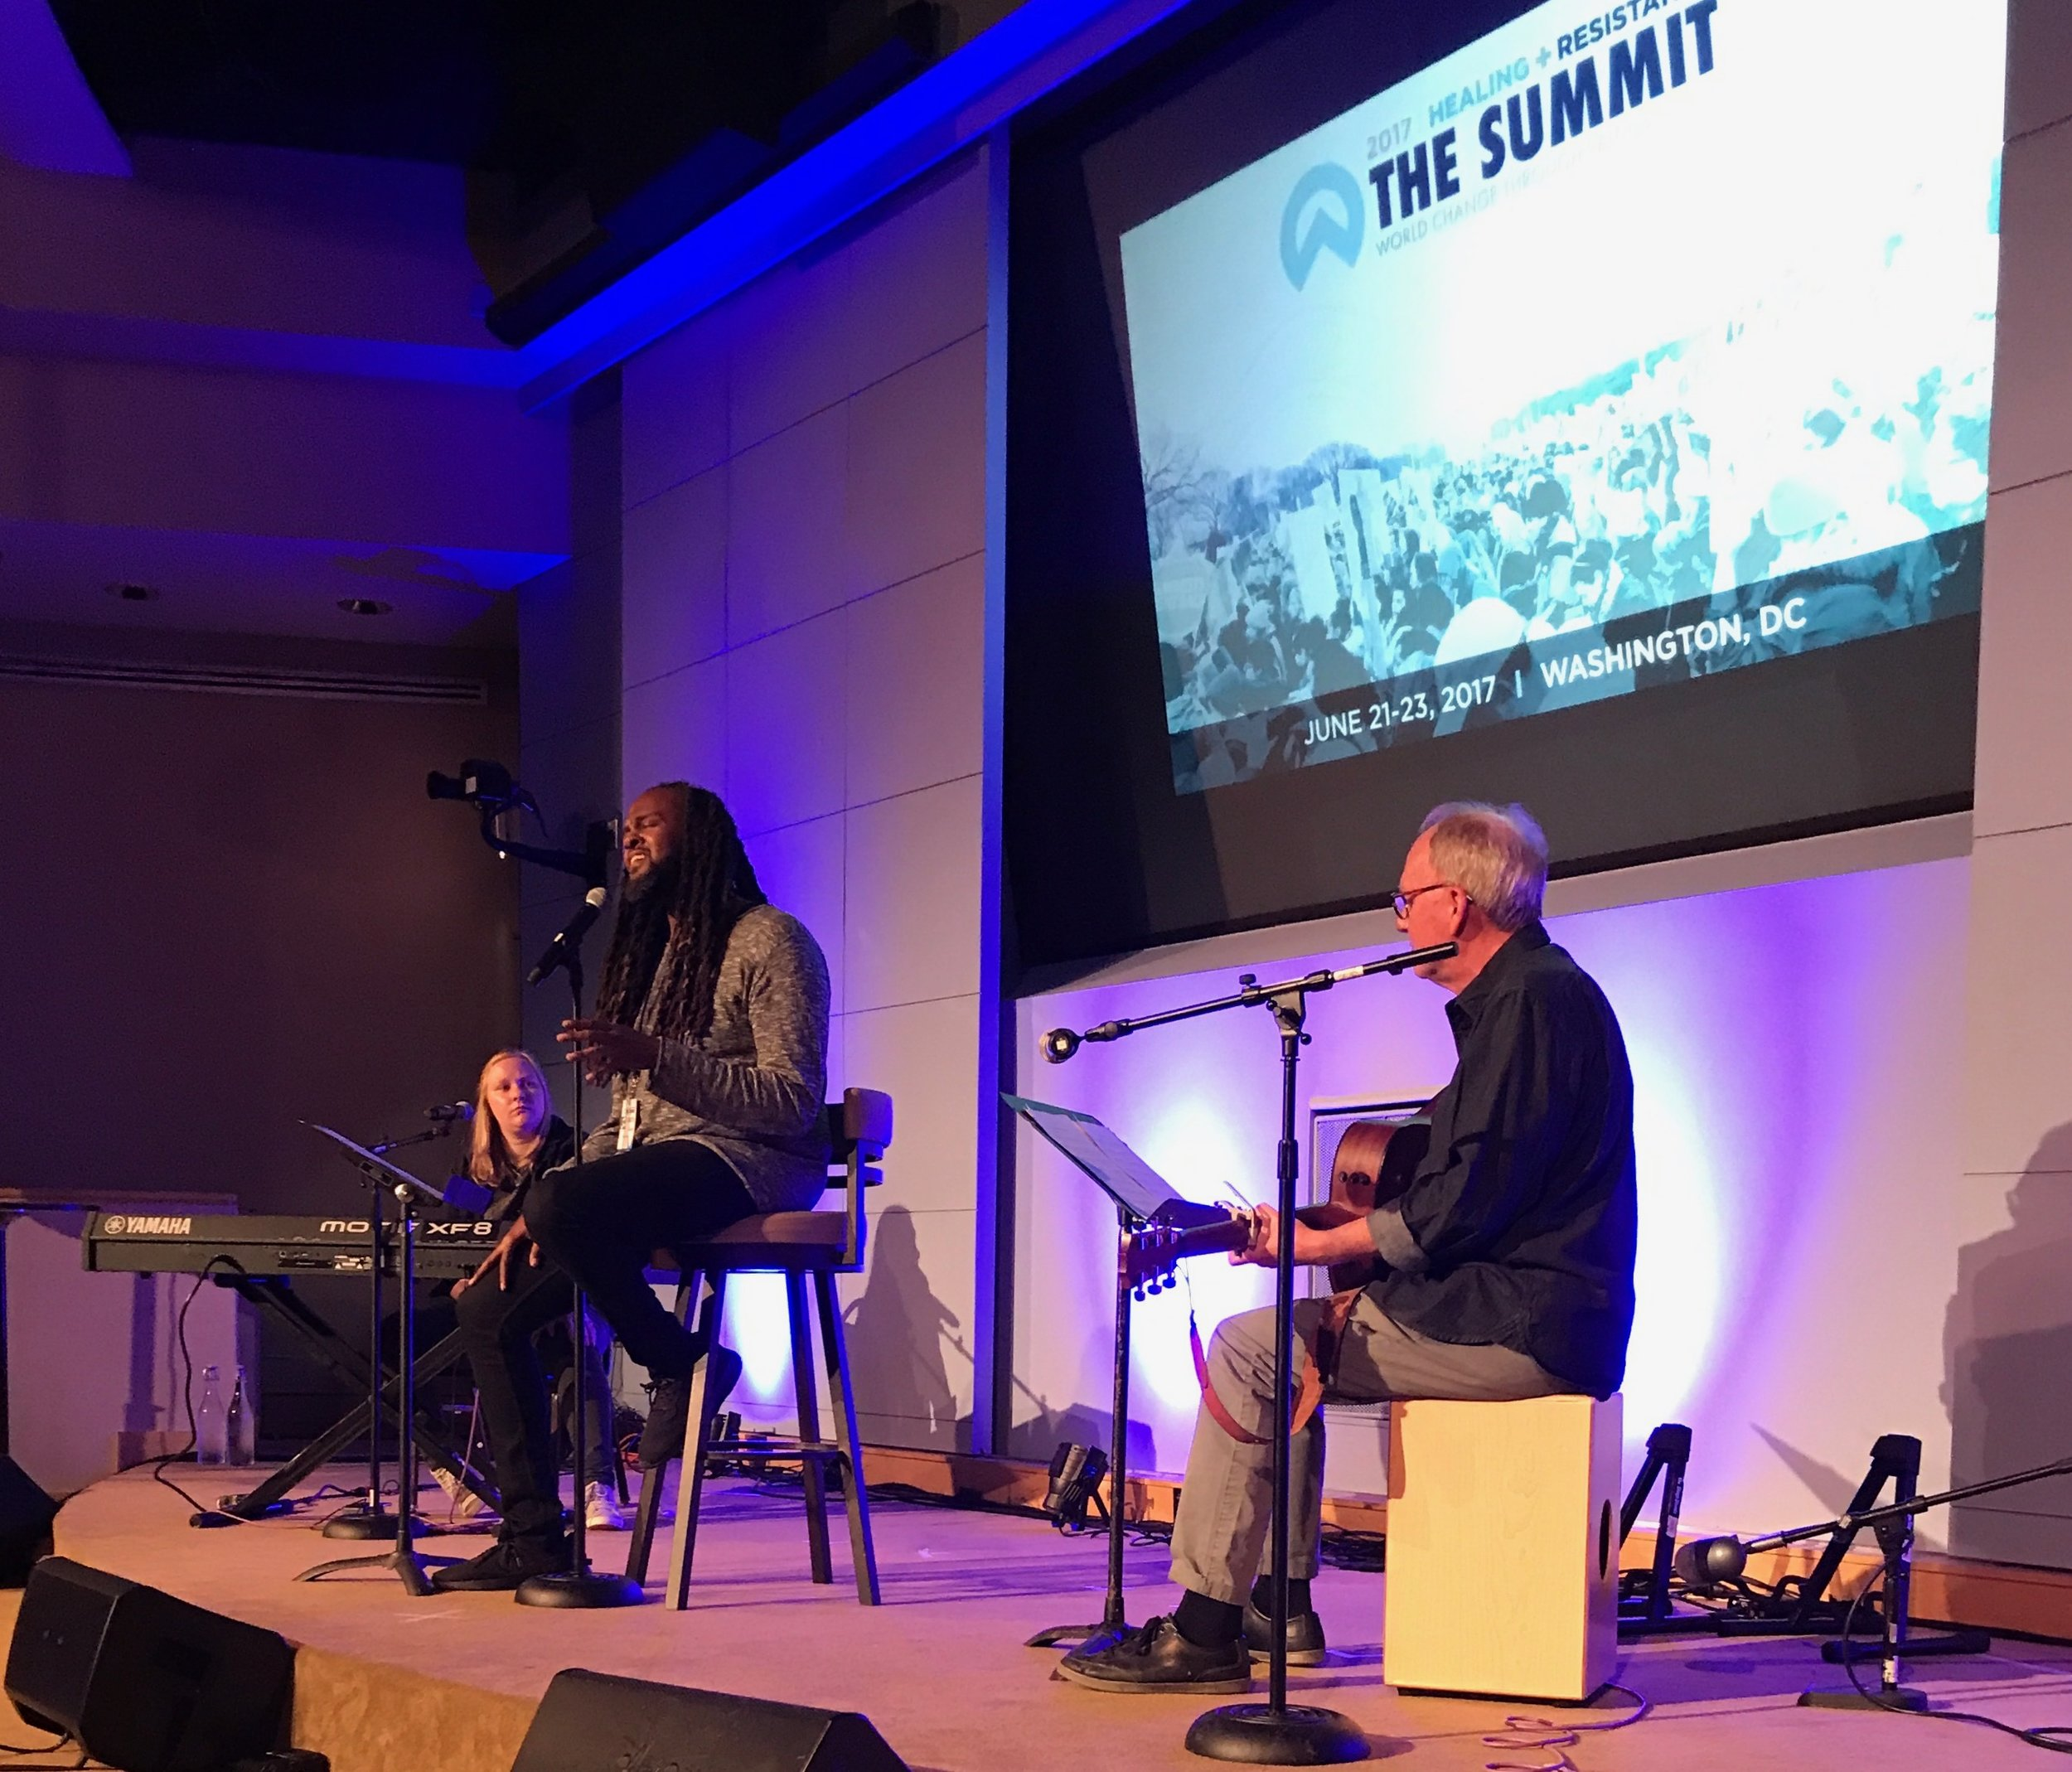 The Many at The Summit Conference